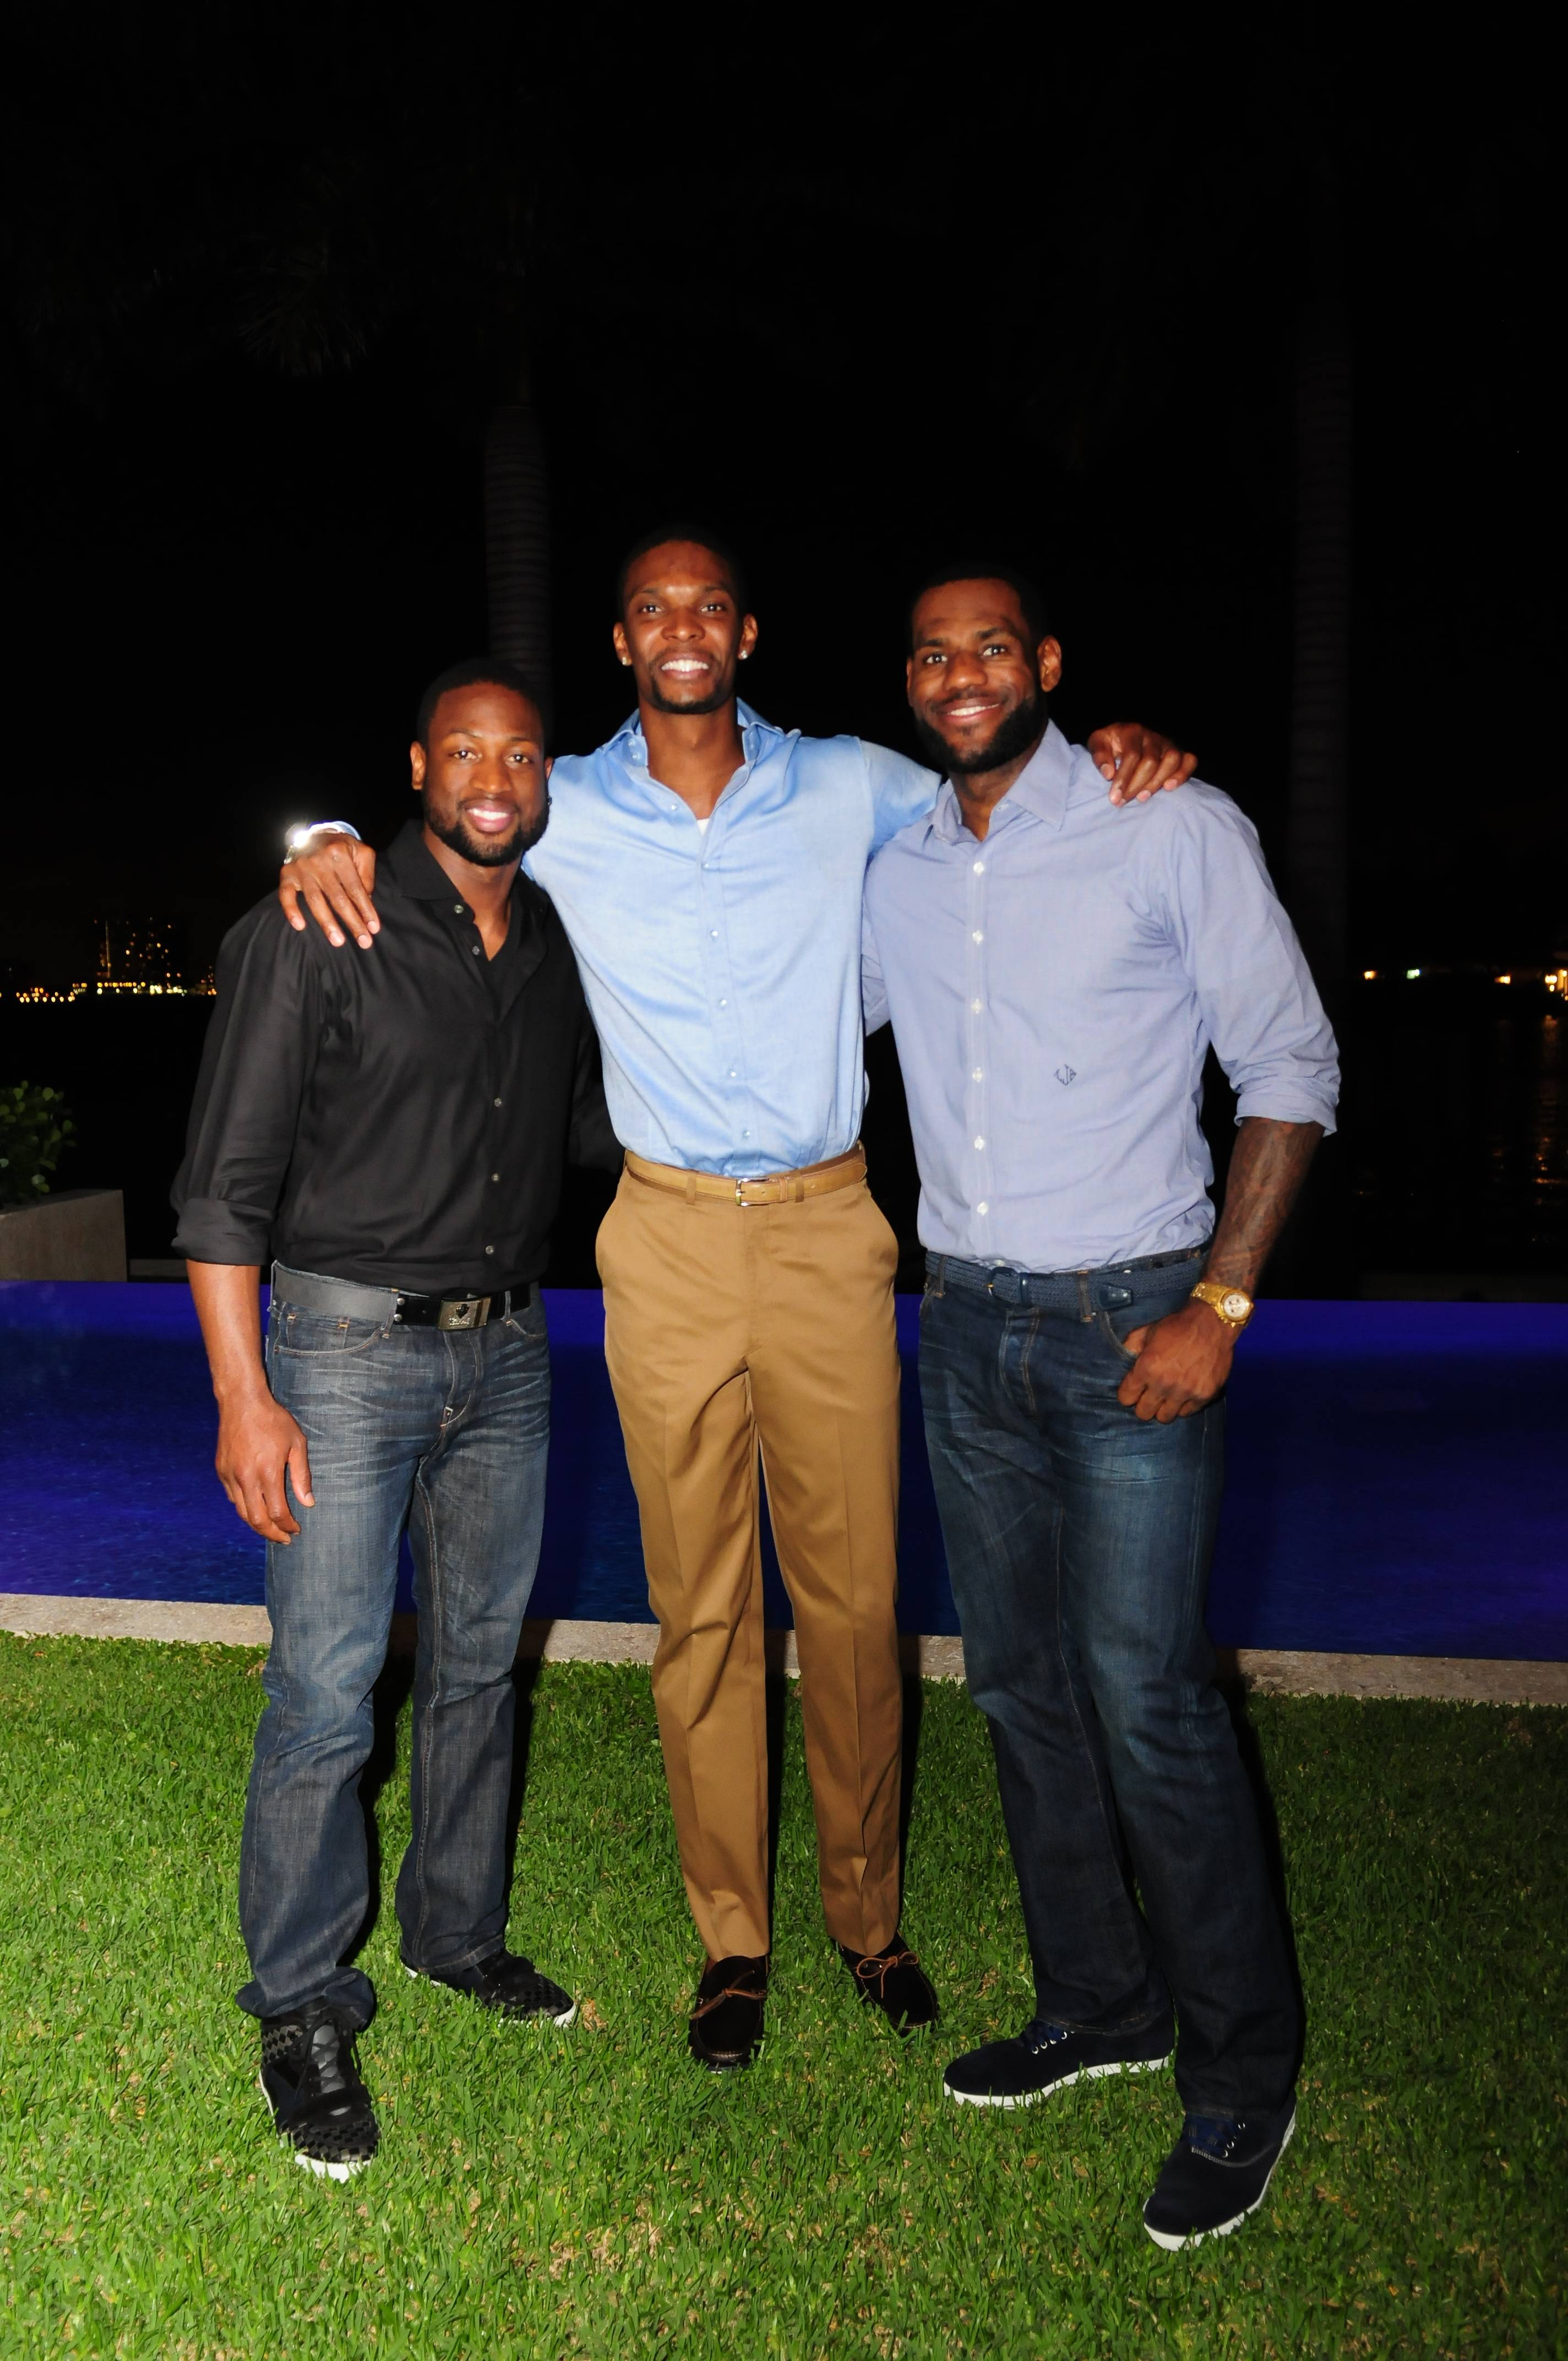 Haute Living and Dom Perignon kick off the Haute 100 celebrations with an intimate dinner in honor of Adrienne William's birthday at the home of her and fiancŽ, Miami Heat star, Chris Bosh.